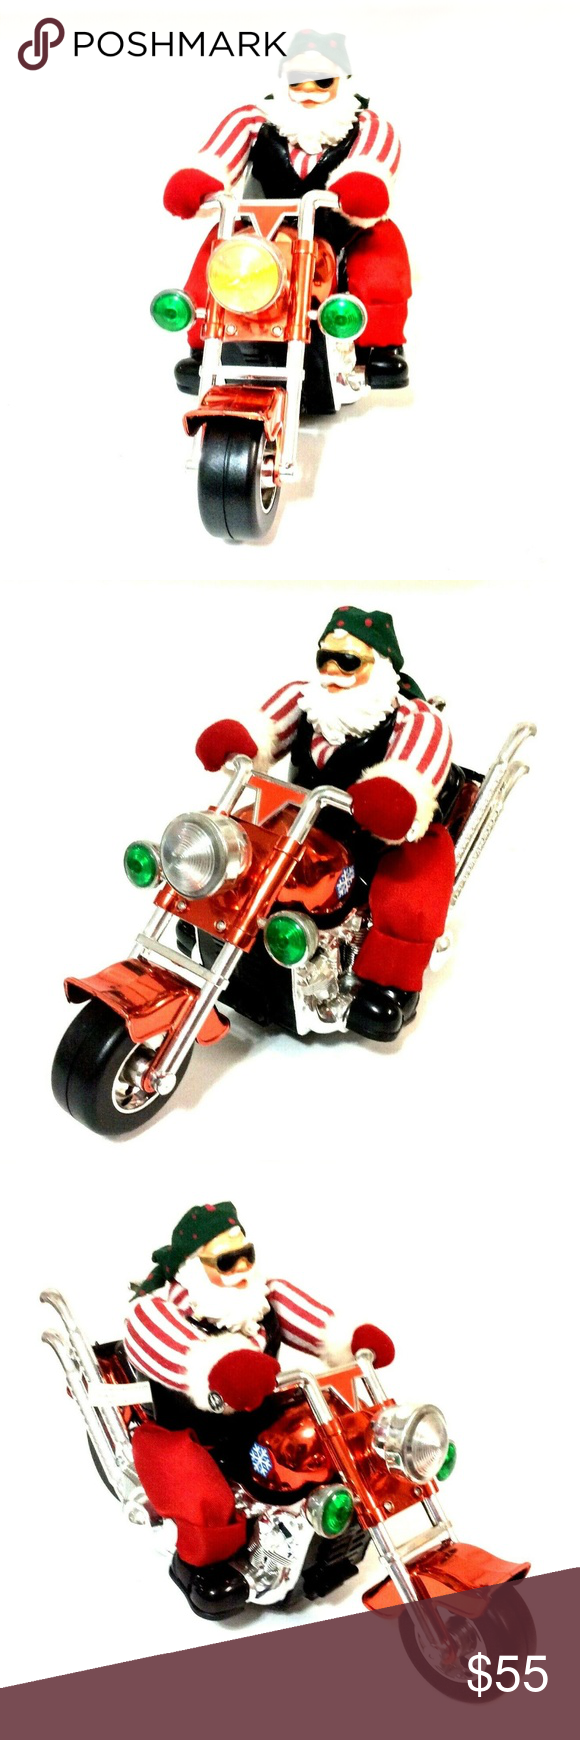 Born To Be Wild Santa Riding Motorcycle Vintage Pan Asian Creations Ltd Most Likely Before 2000 Vintage Christm Riding Motorcycle Riding Vintage Christmas